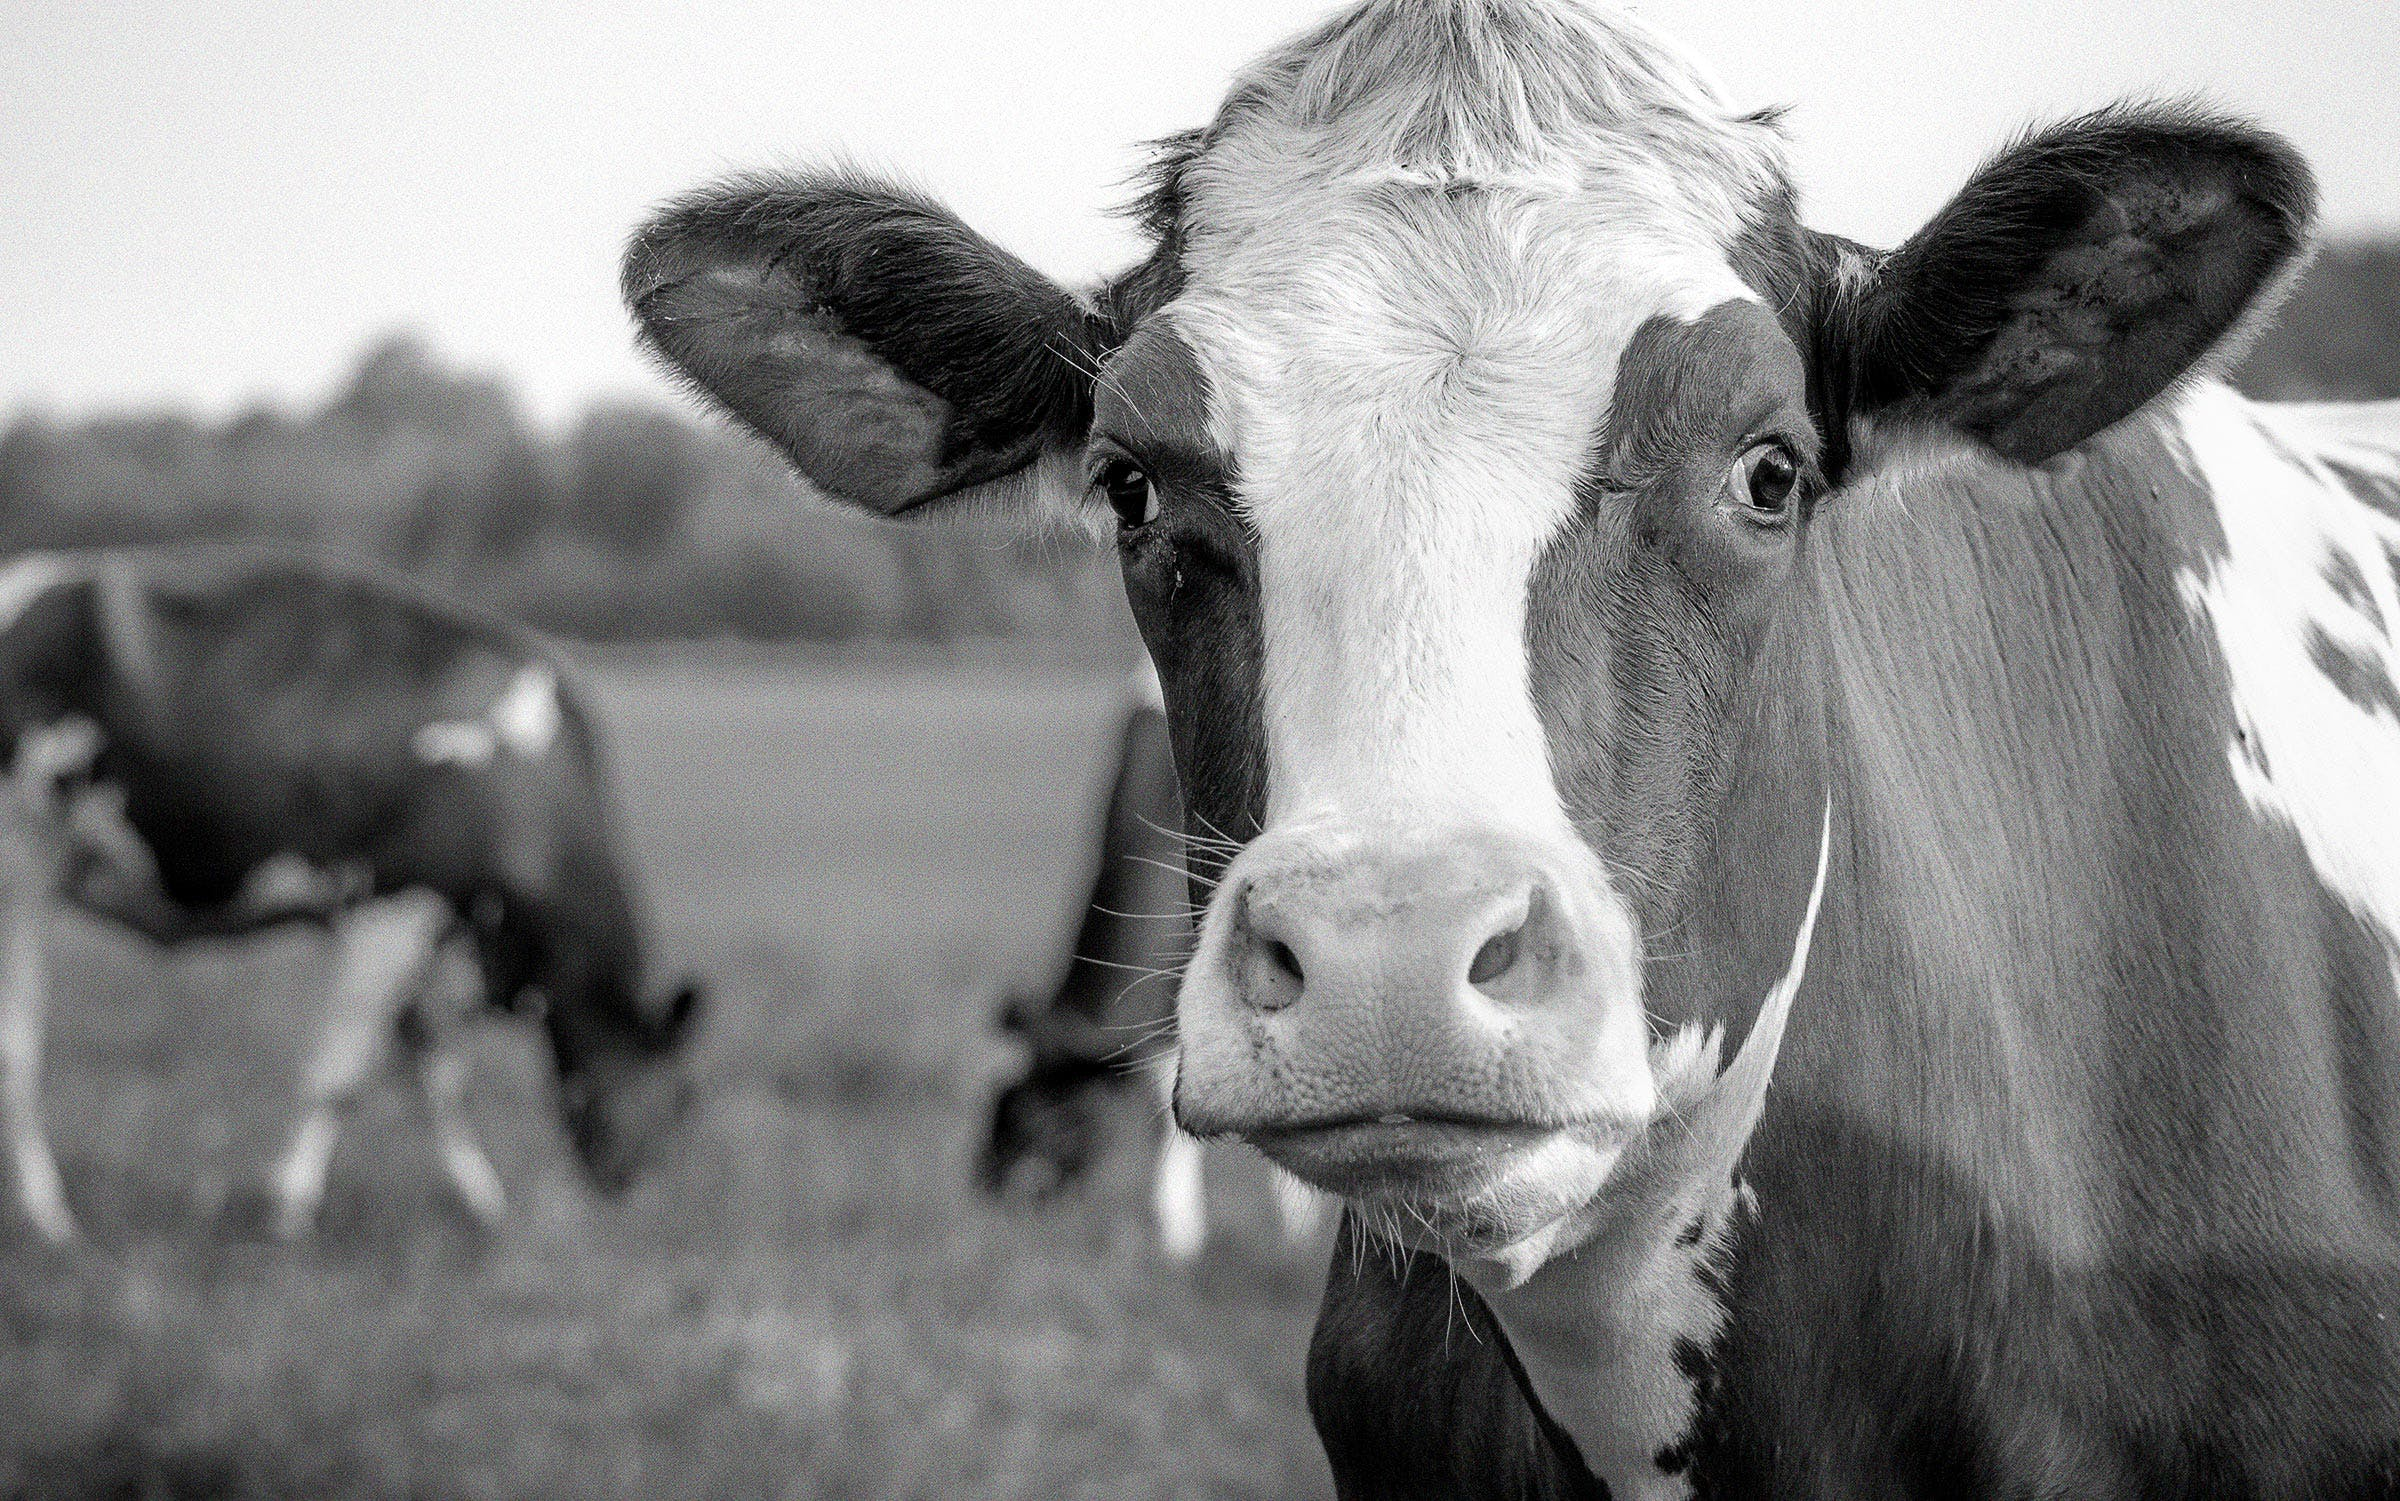 Close-up photo of a cow